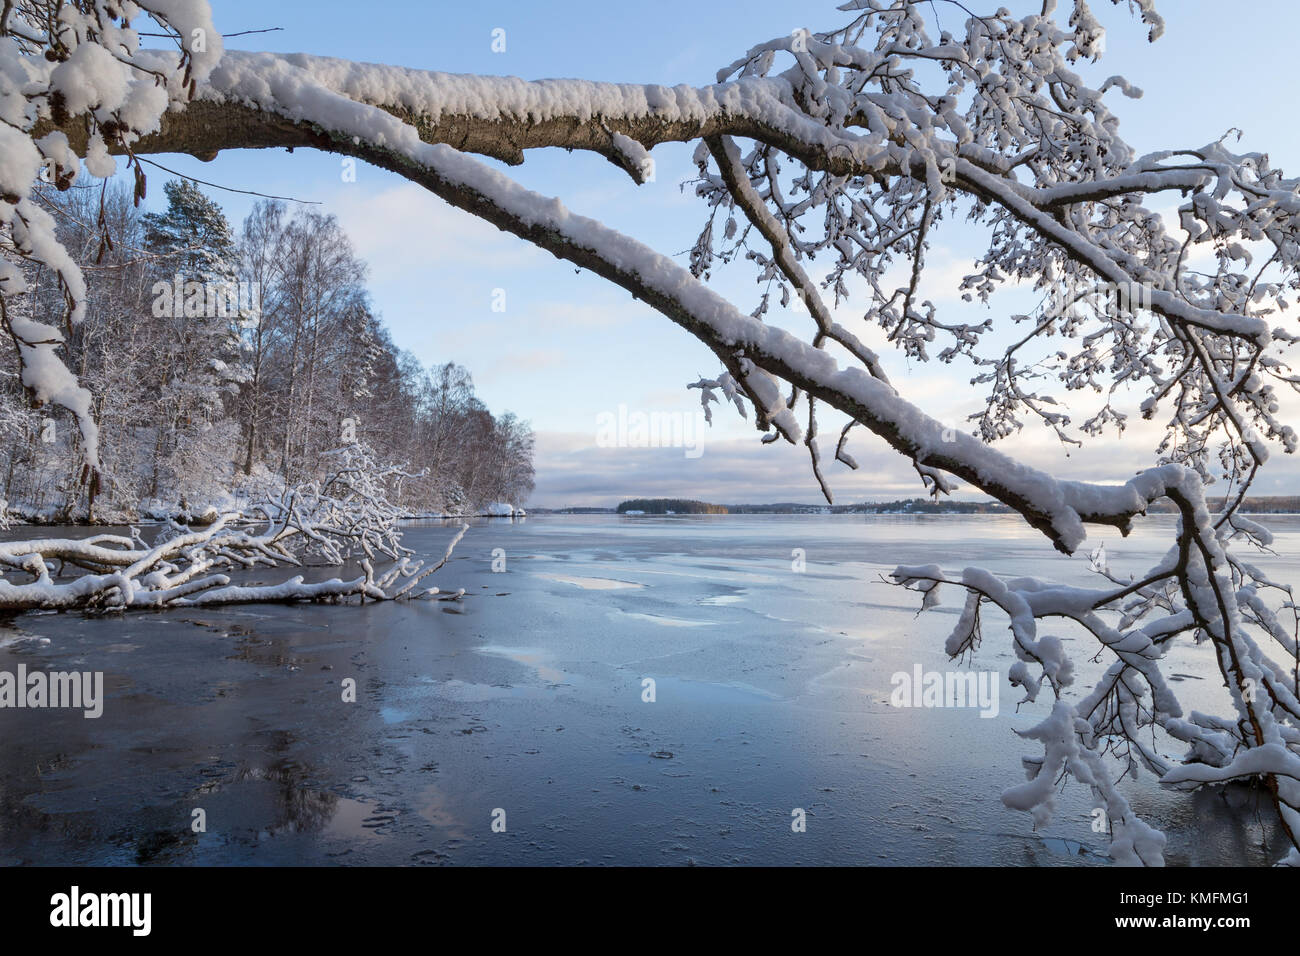 Beautiful view of snowy trees and frozen Lake Pyhäjärvi in the winter in Tampere, Finland. - Stock Image